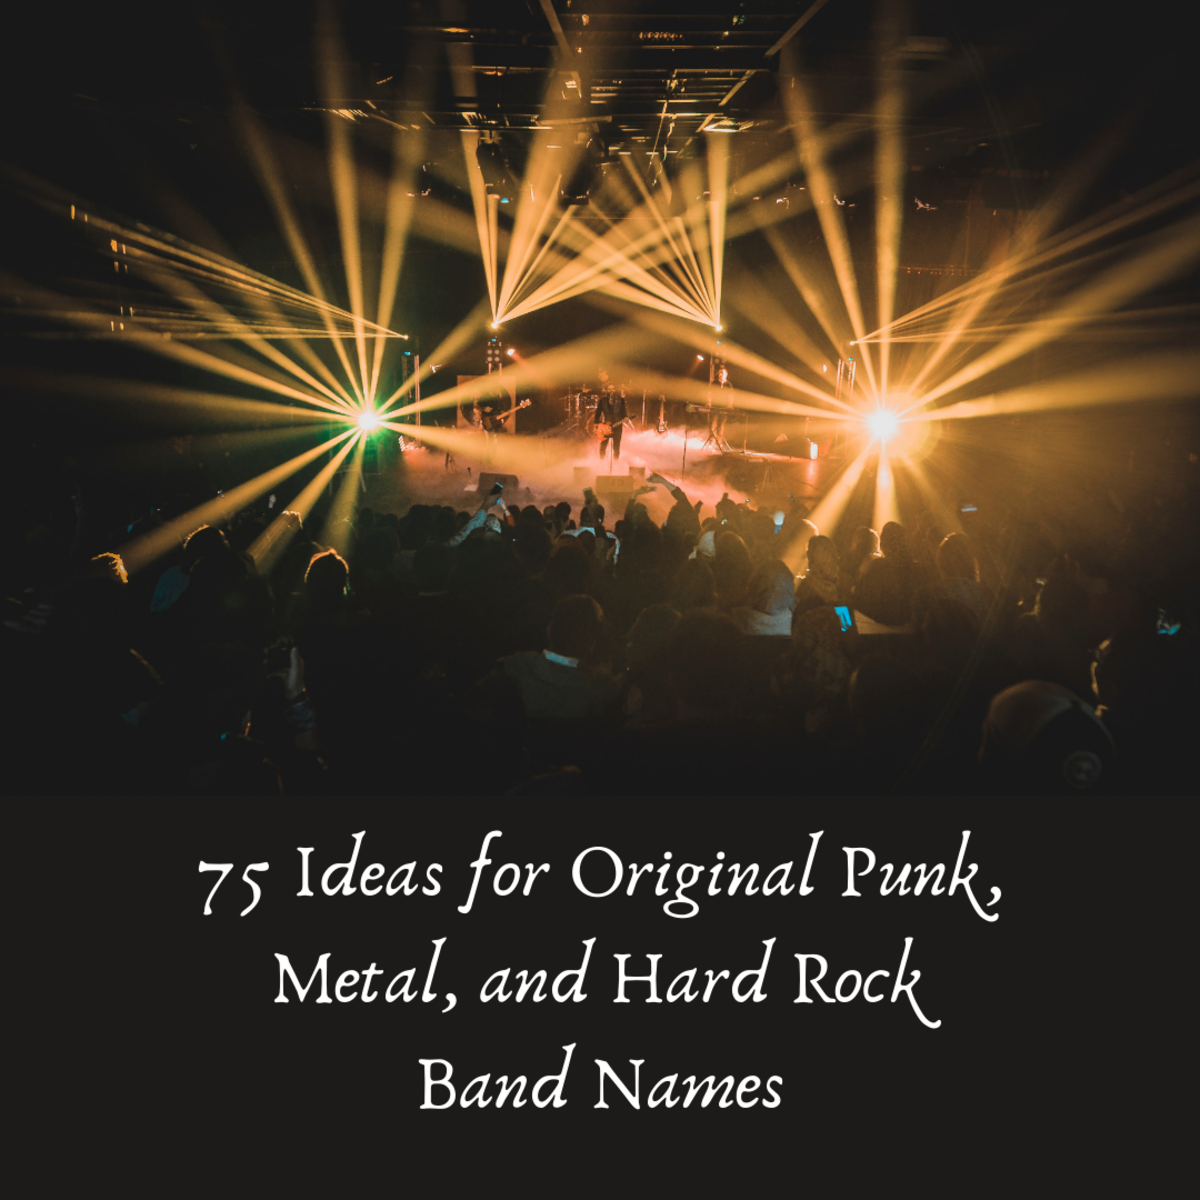 Band names can be hard to come up with. This article should help!